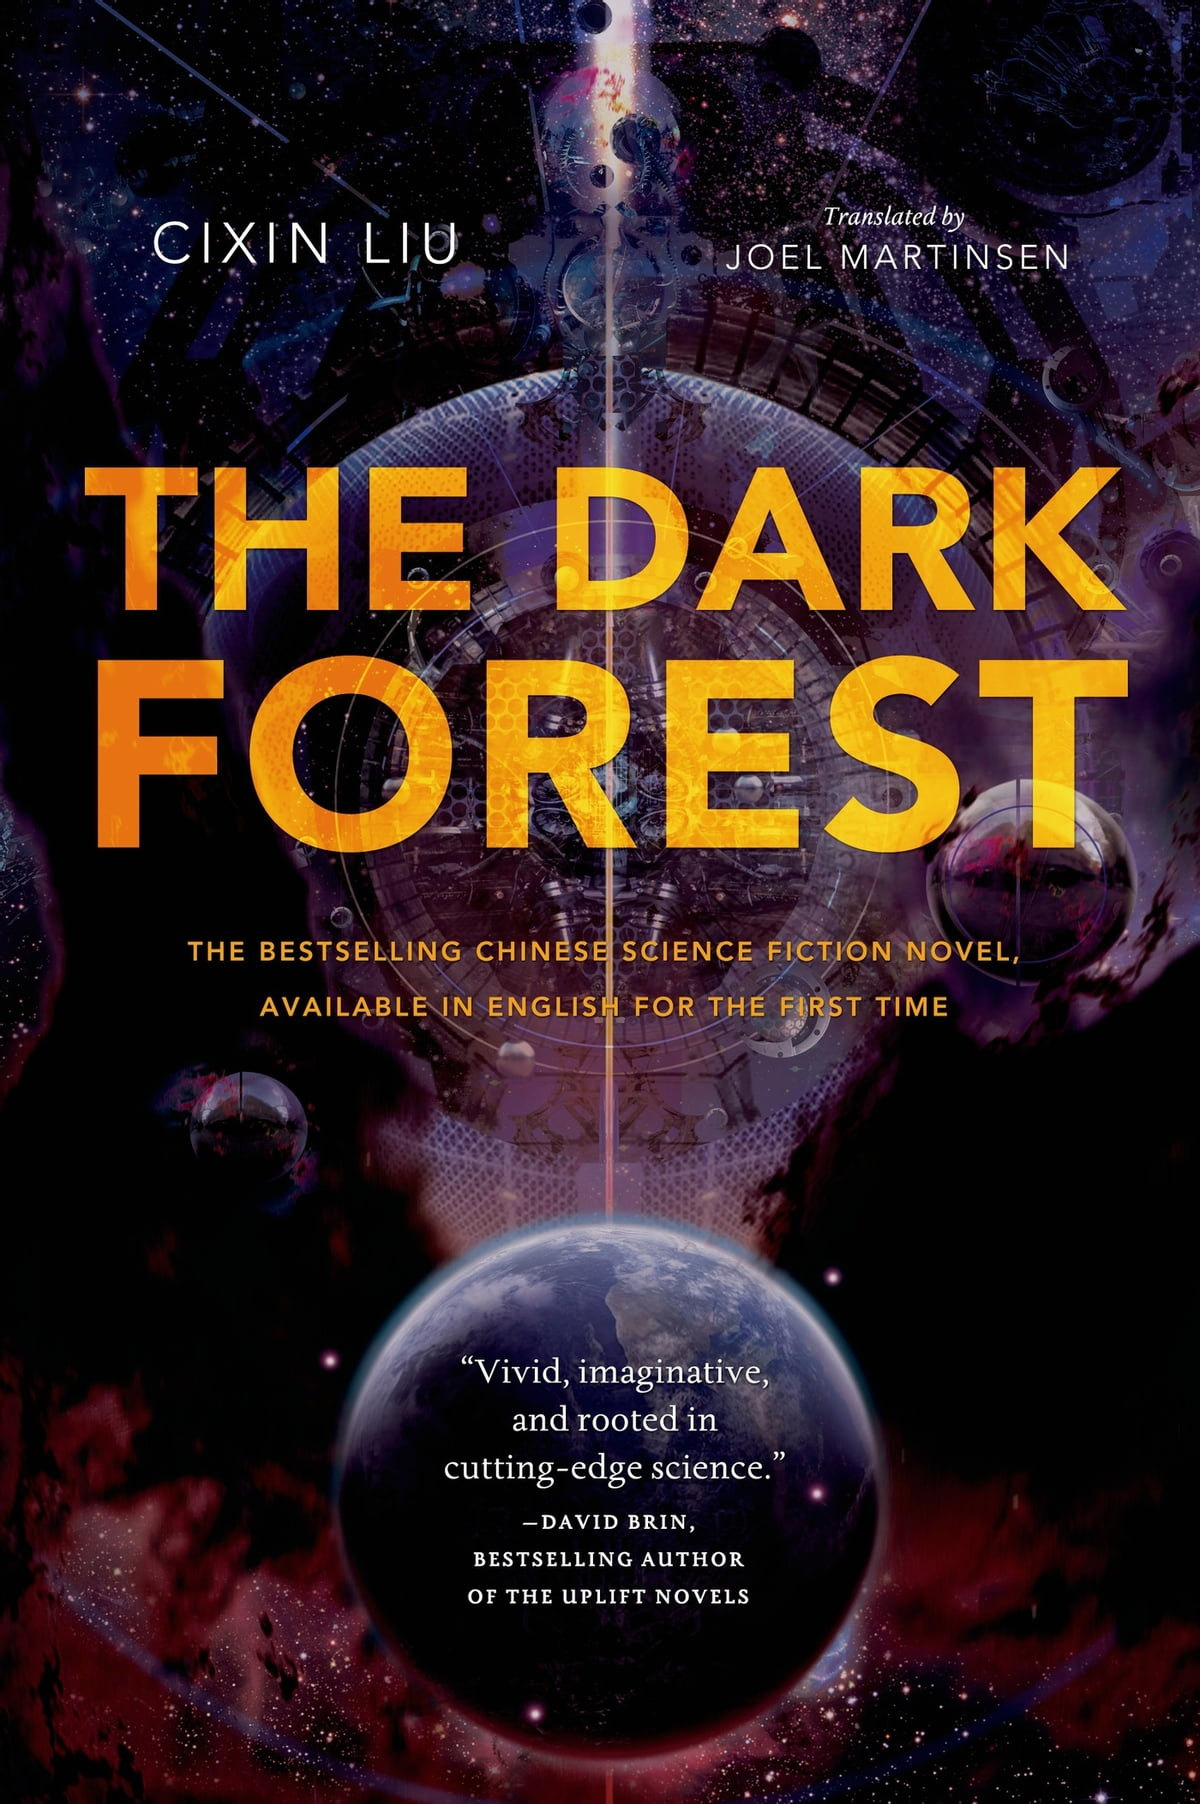 The man in the high castle ebook by philip k dick 9780547601205 the dark forest ebook by joel martinsen cixin liu fandeluxe Document